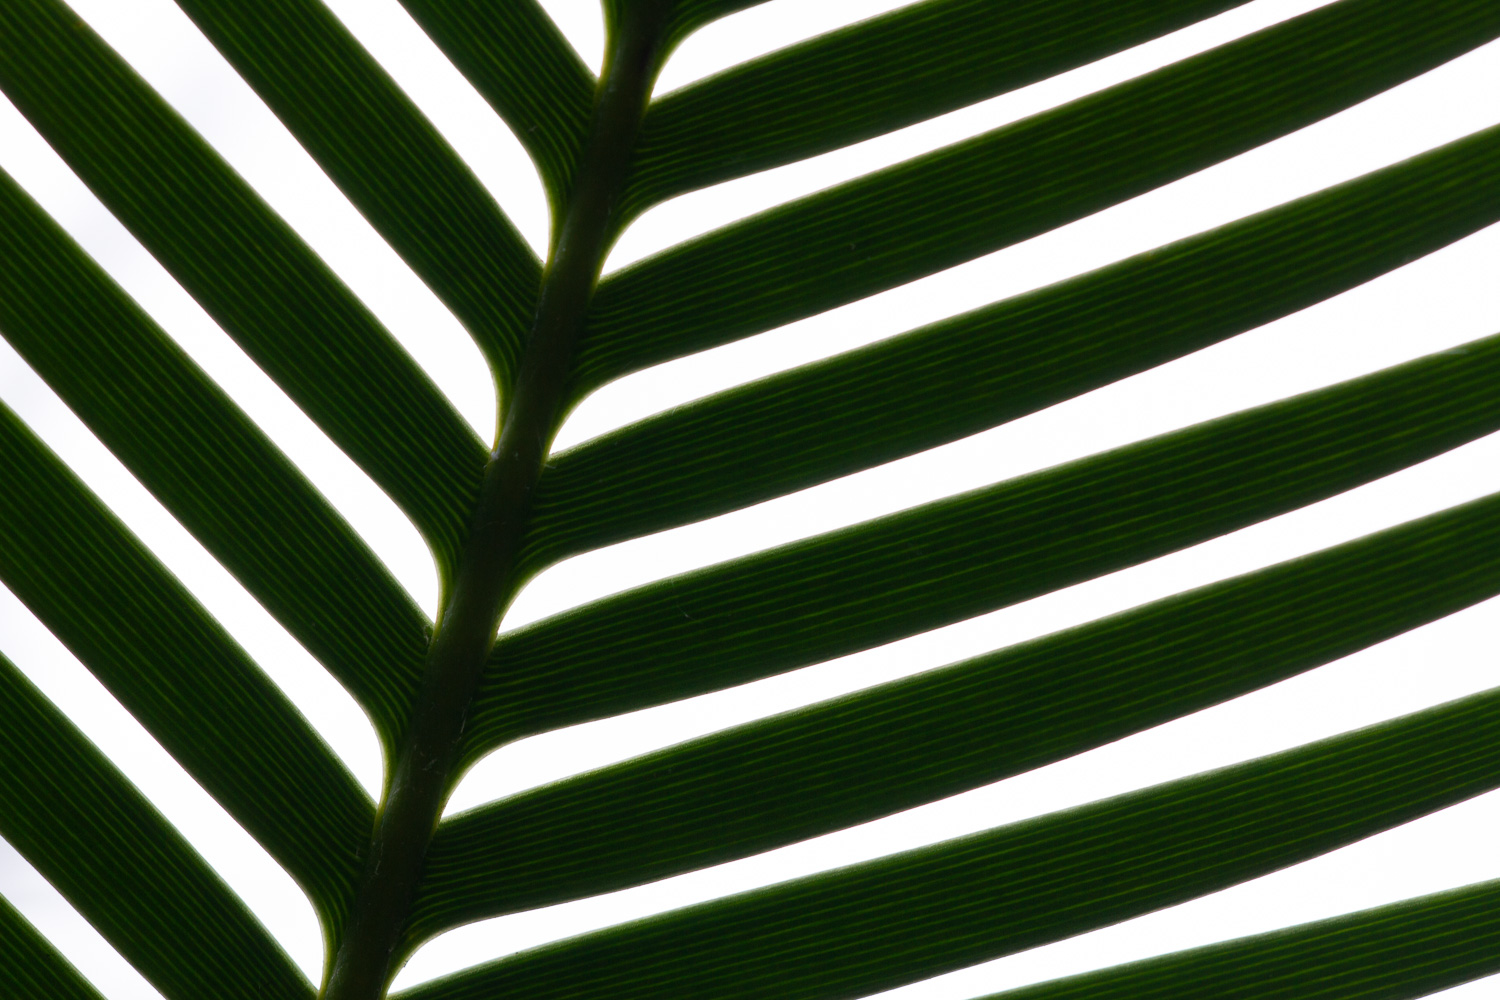 palm leaf backlighting - 5 Ways to Make Extraordinary Photographs of Ordinary Subjects